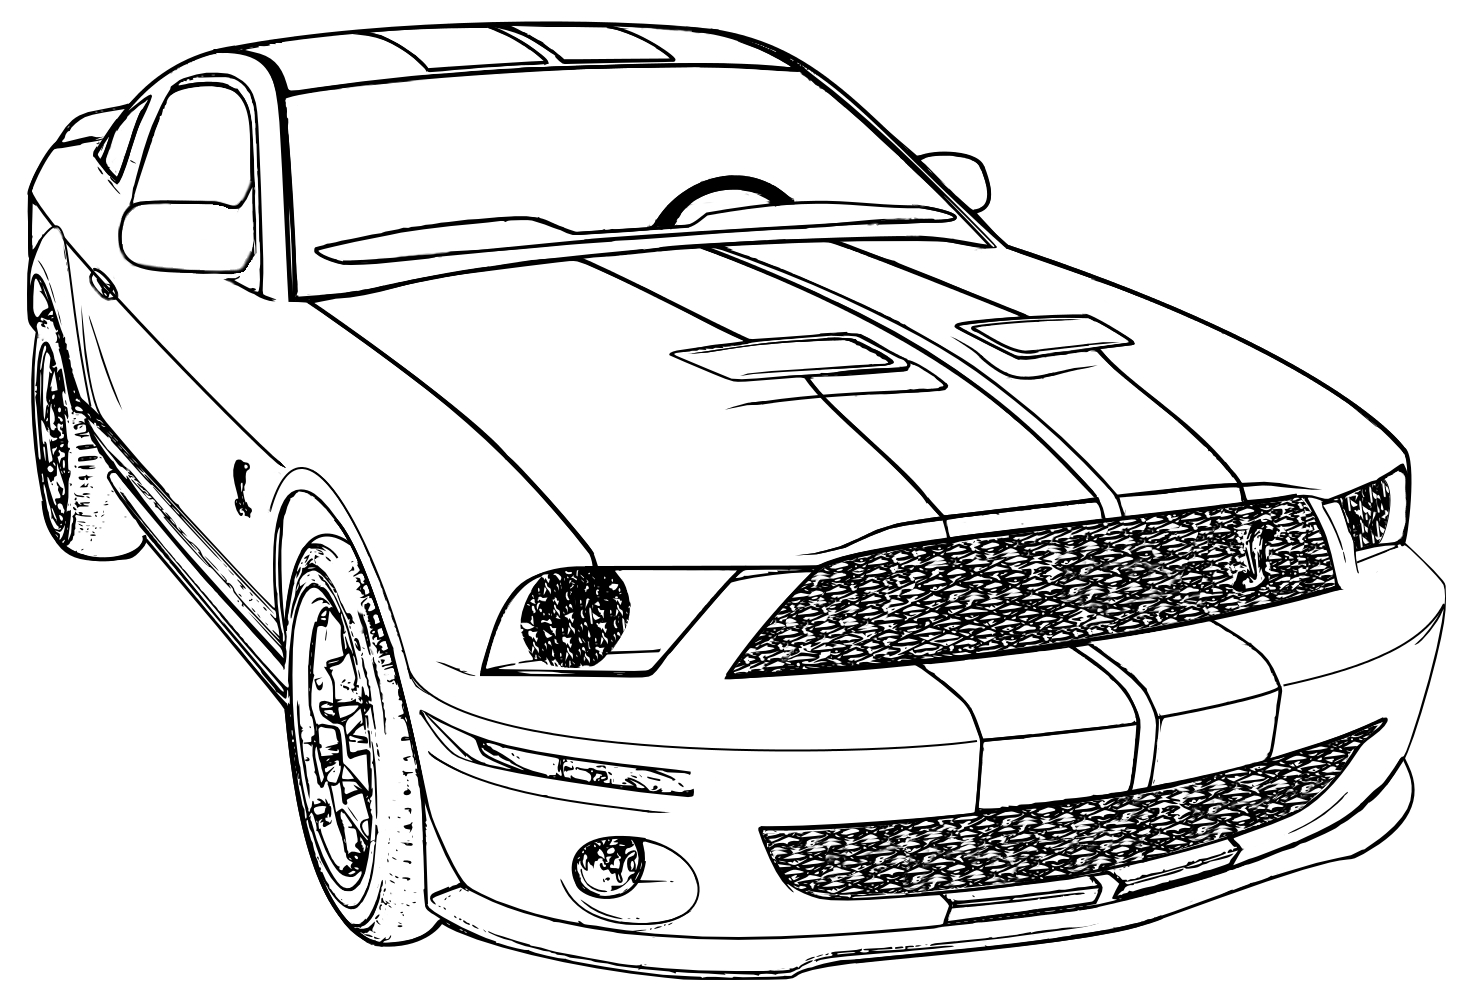 Mustang Coloring Page Free Coloring Pages Download | Xsibe ferrari ...